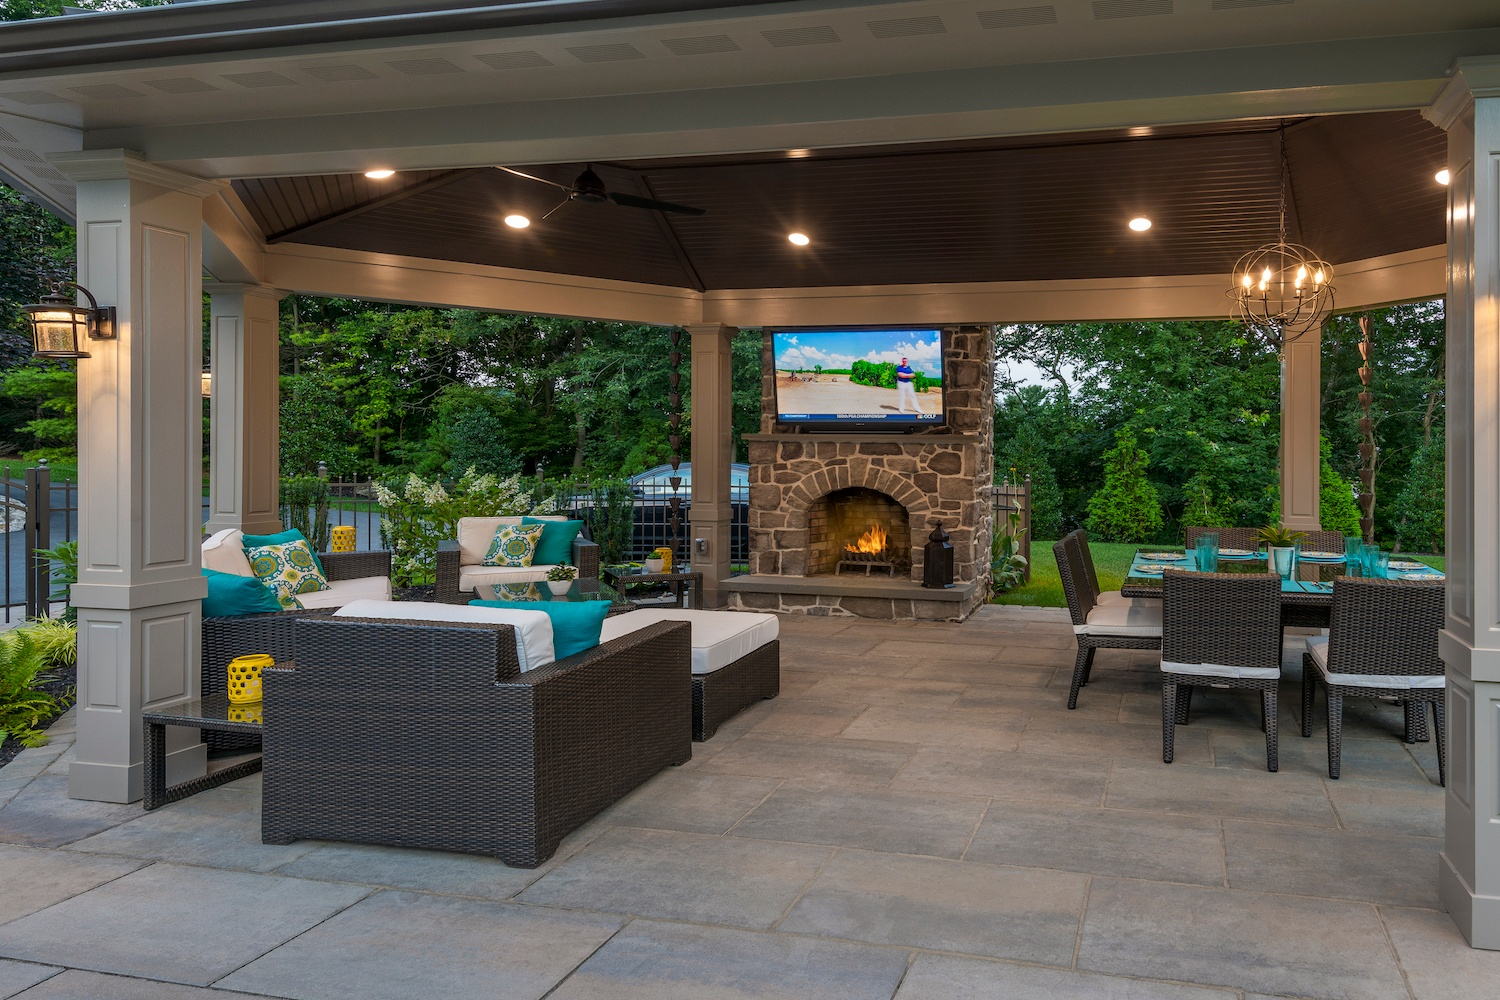 patio-pavilion-outdoor-fireplace-tv-2